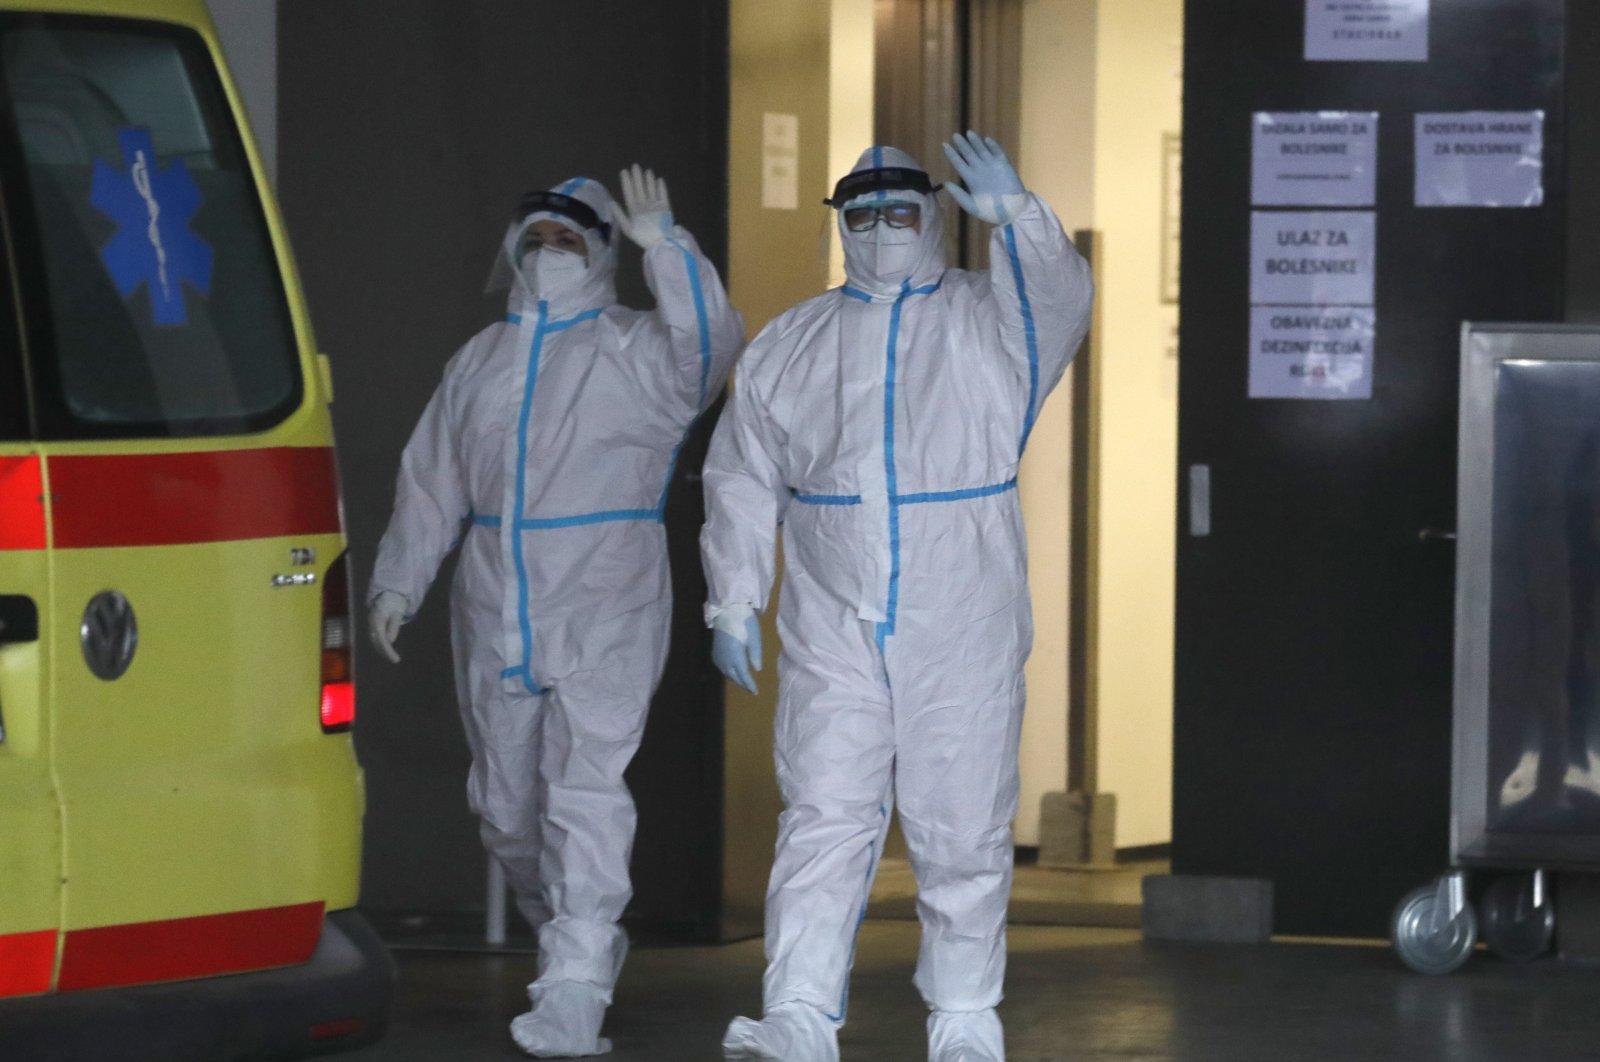 Epidemiologists together with the first patients arrive at a temporary COVID-19 hospital at the Sports and Concert Hall Arena Zagreb in capital Zagreb, Croatia, Nov. 28, 2020. (EPA Photo)